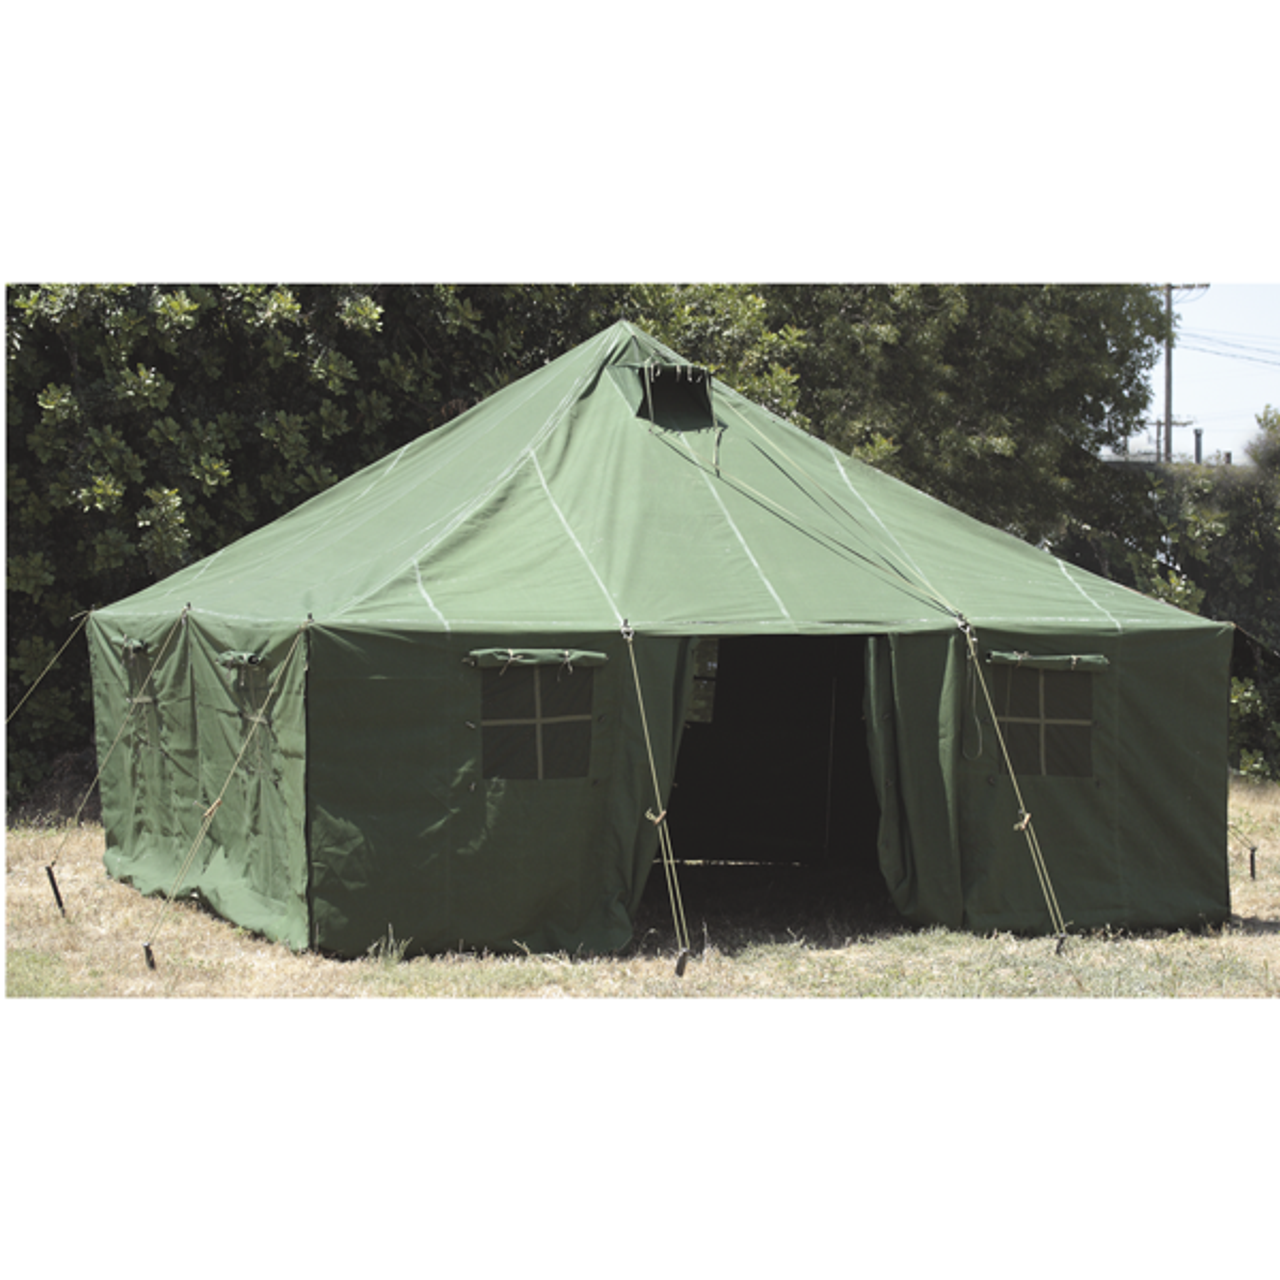 16'x16' General Purpose Canvas Military Style Tent